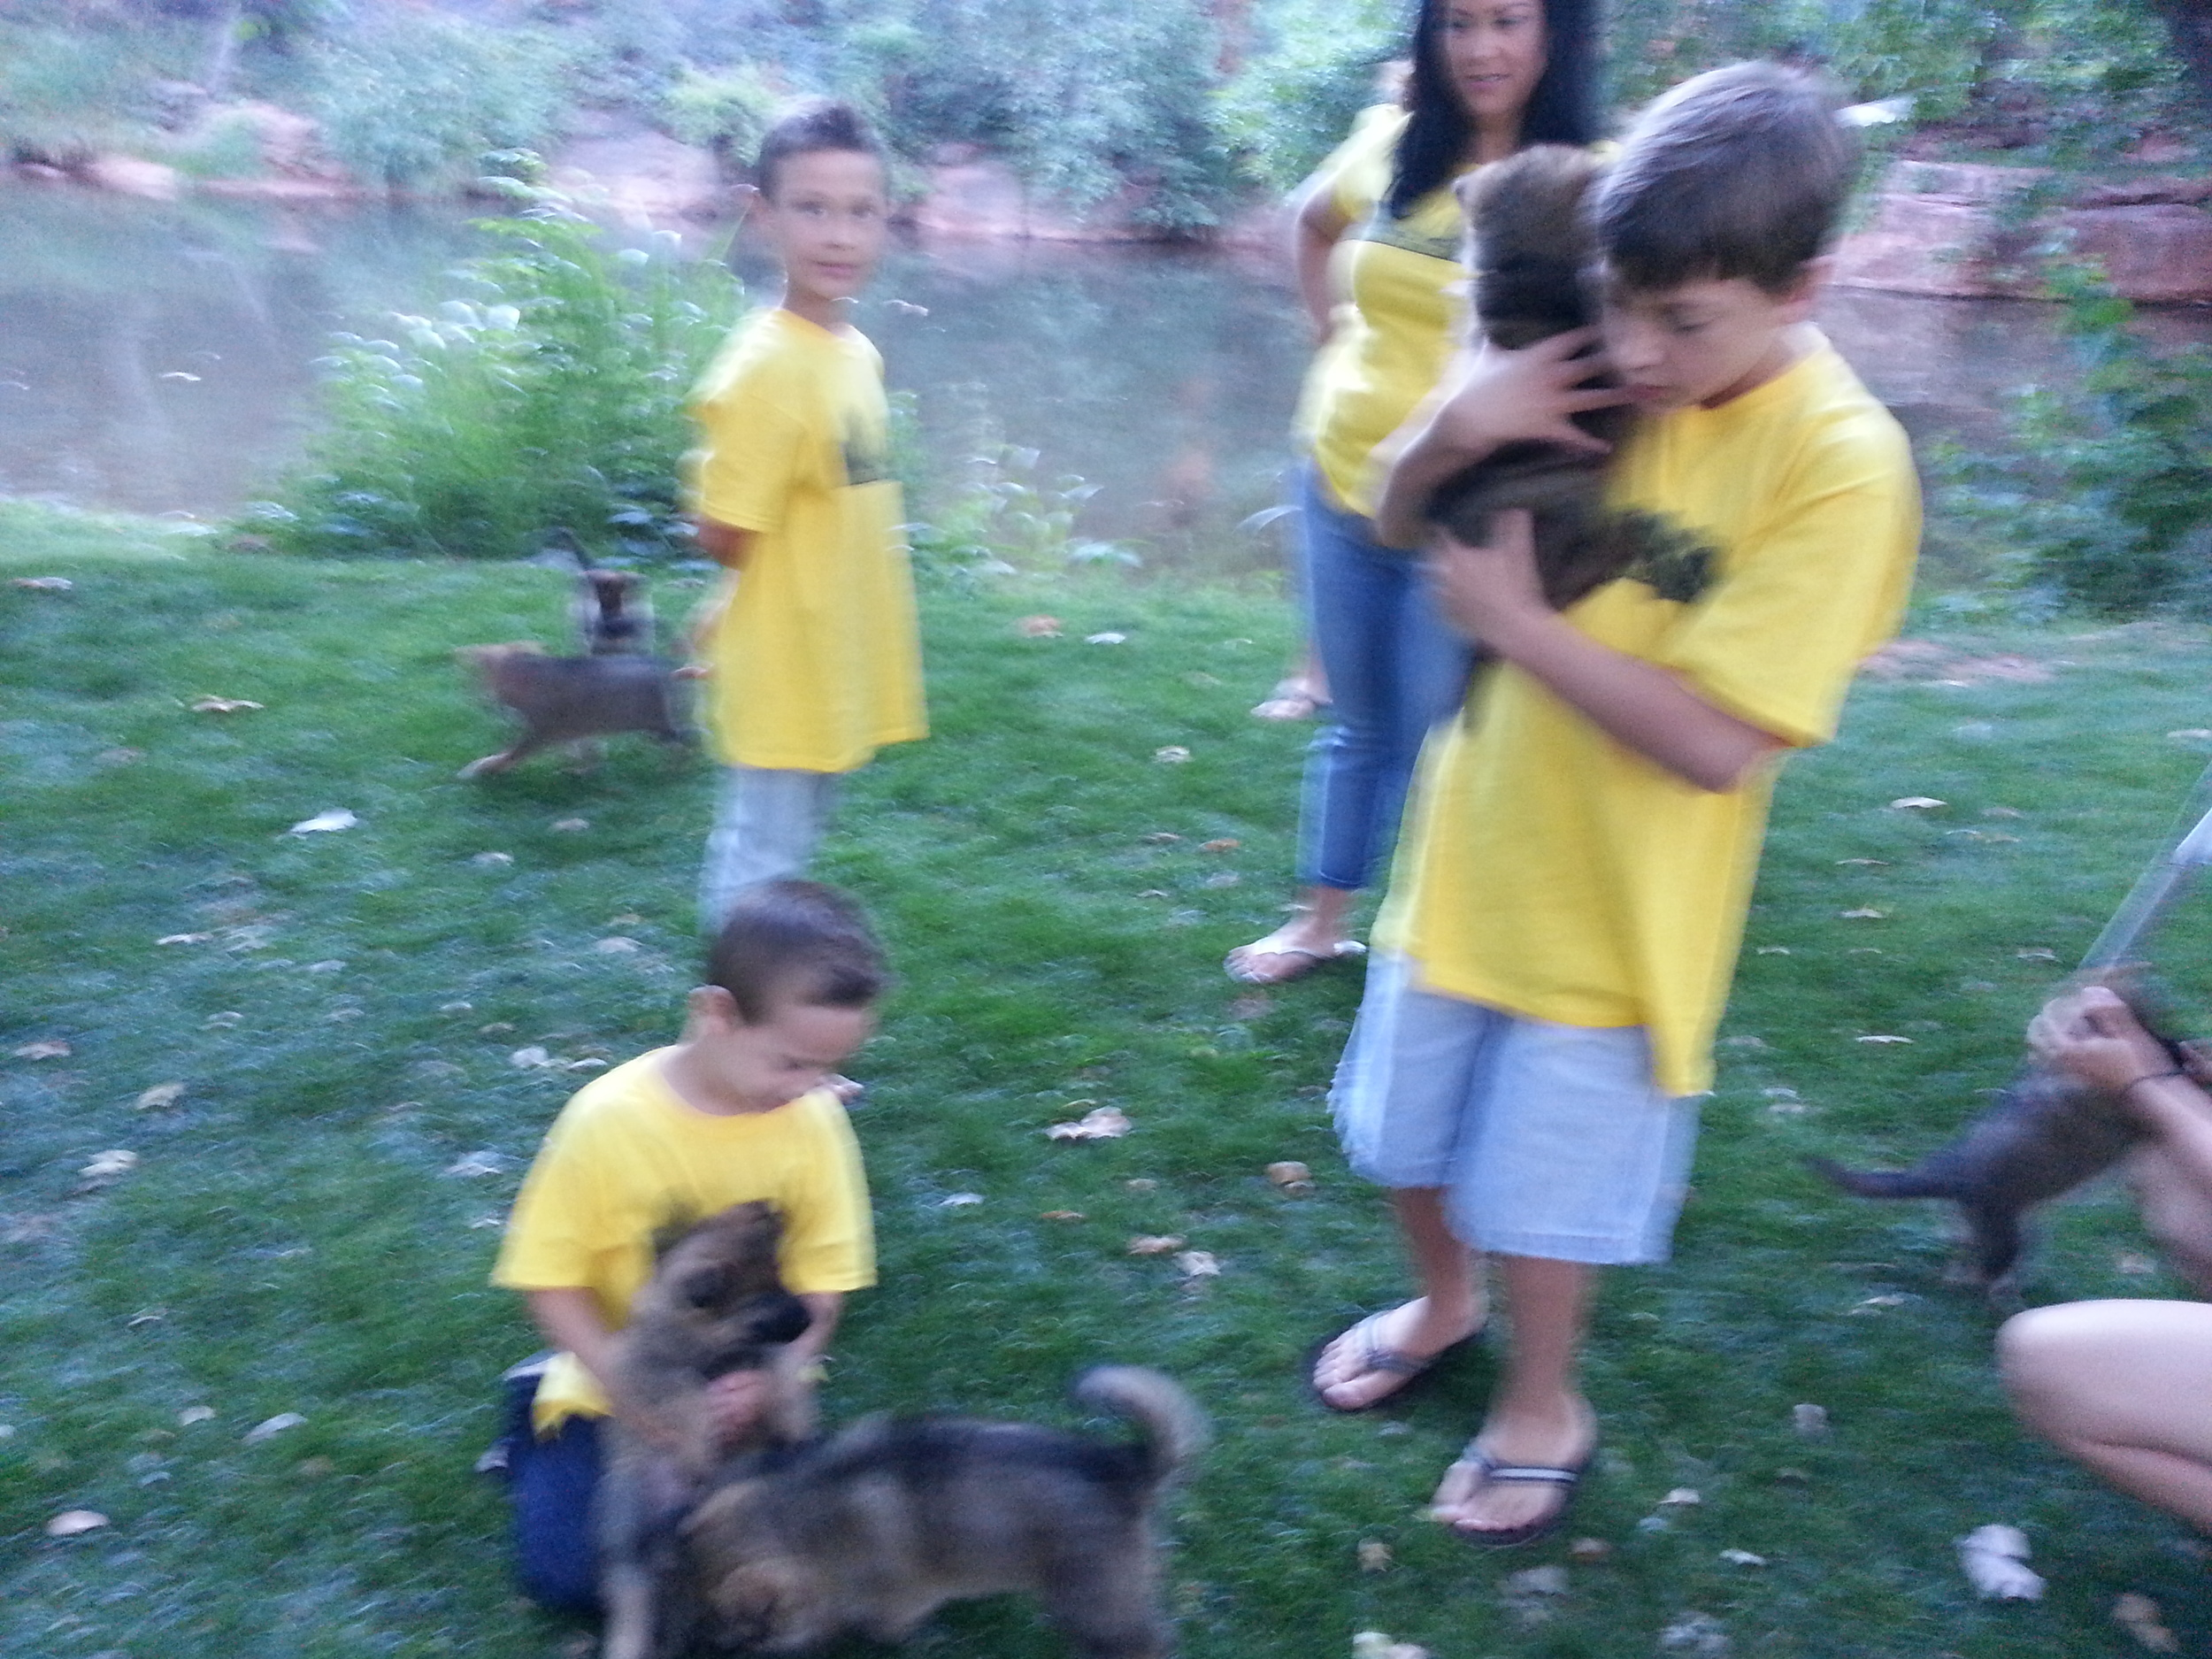 While in Sedona we ran into a family reunion. The pups were introduced to toddlers, young children, and adults...all wanting to give them love.